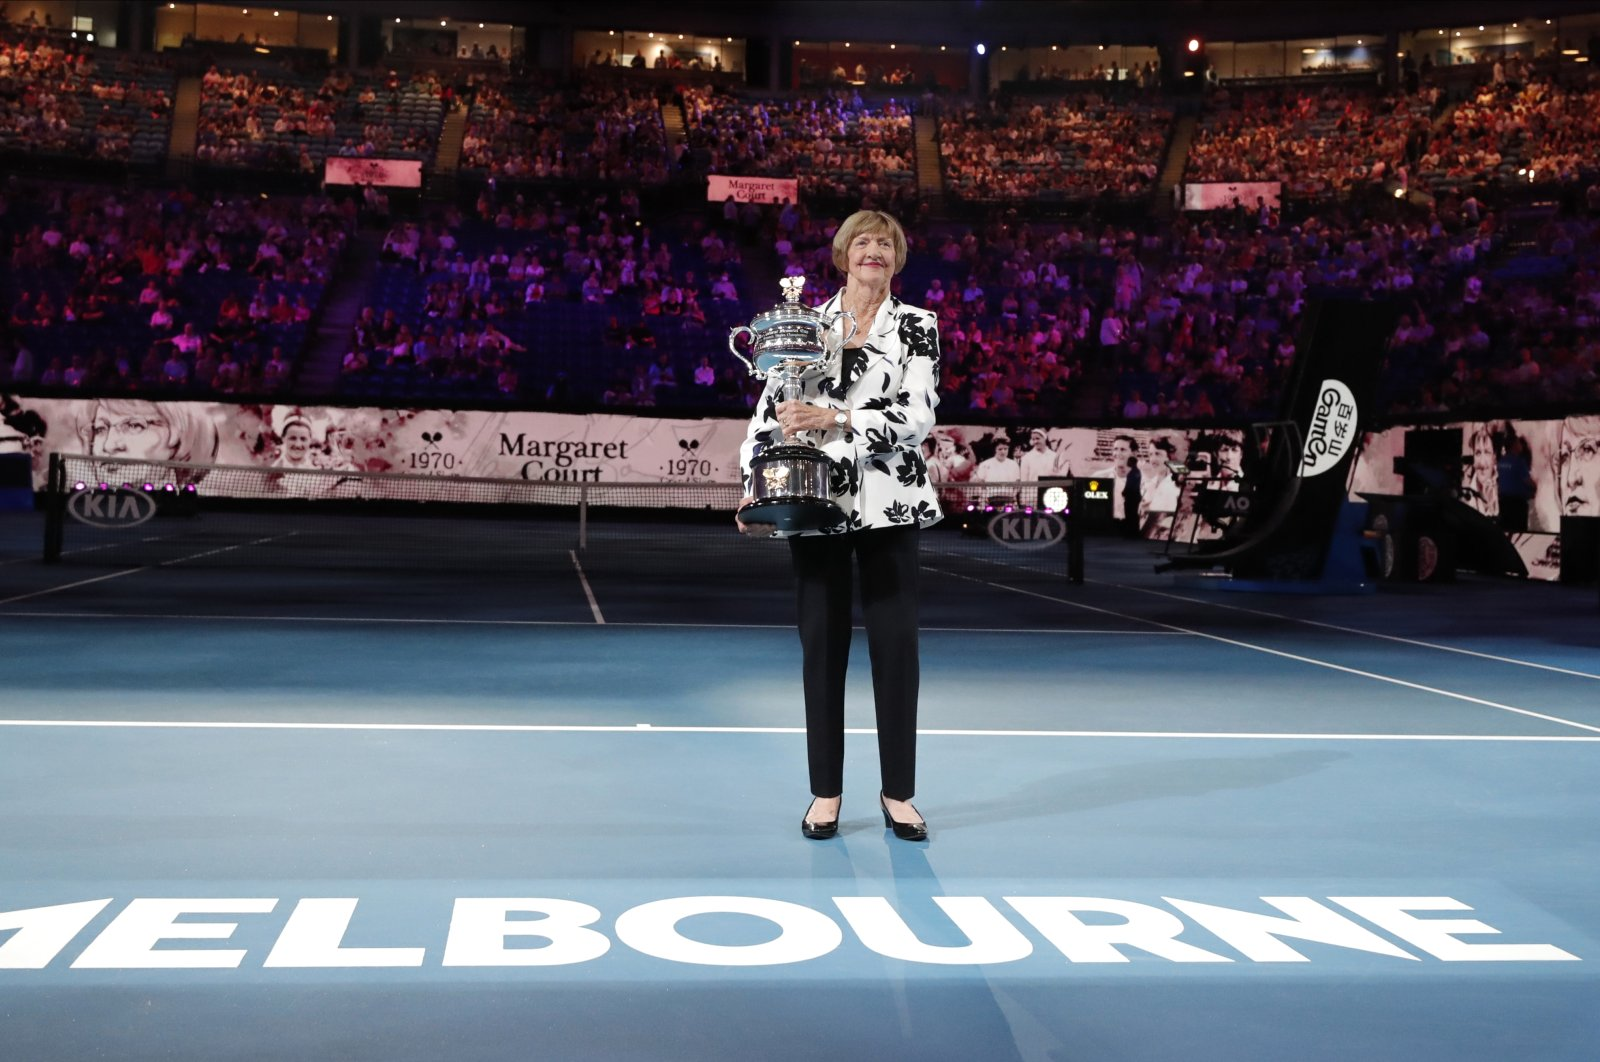 Margaret Court holds up the women's Australian Open trophy as her 50th anniversary of her Grand Slam is celebrated at the Australian Open tennis championship in Melbourne, Australia, Jan. 27, 2020. (AP Photo)